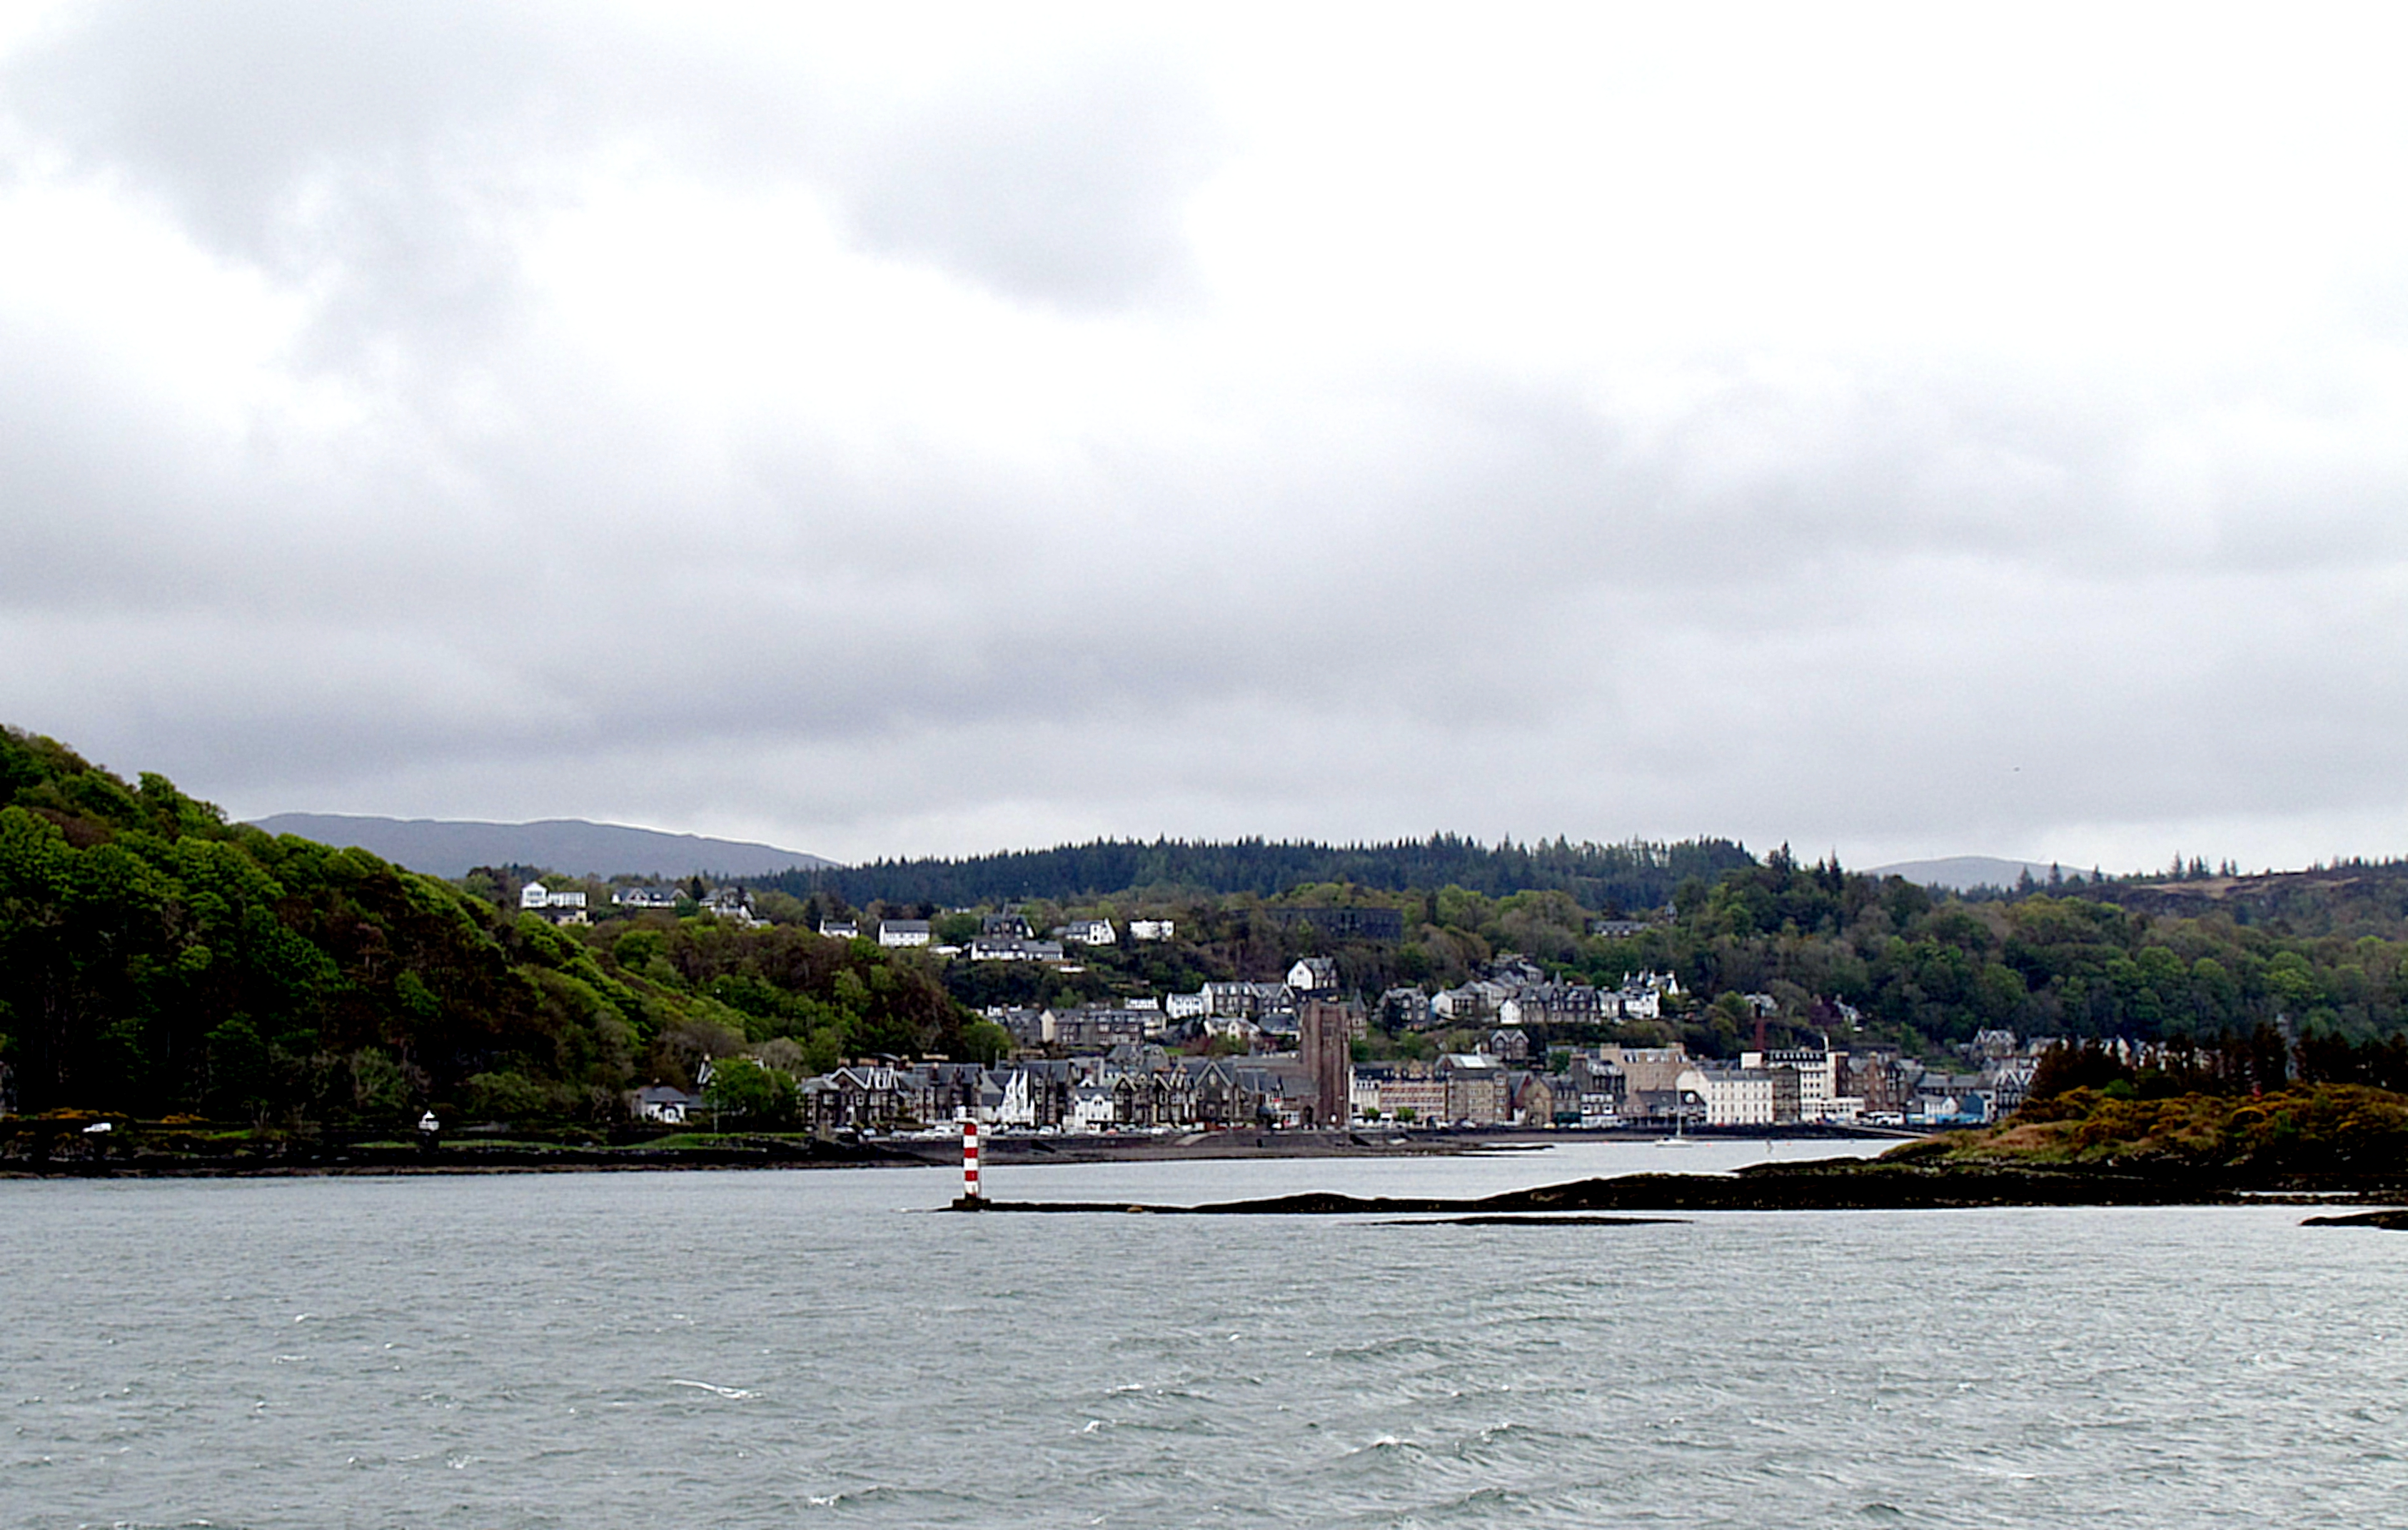 This is the waterfront of Oban as the ferry carries me away towards the island of Mull.